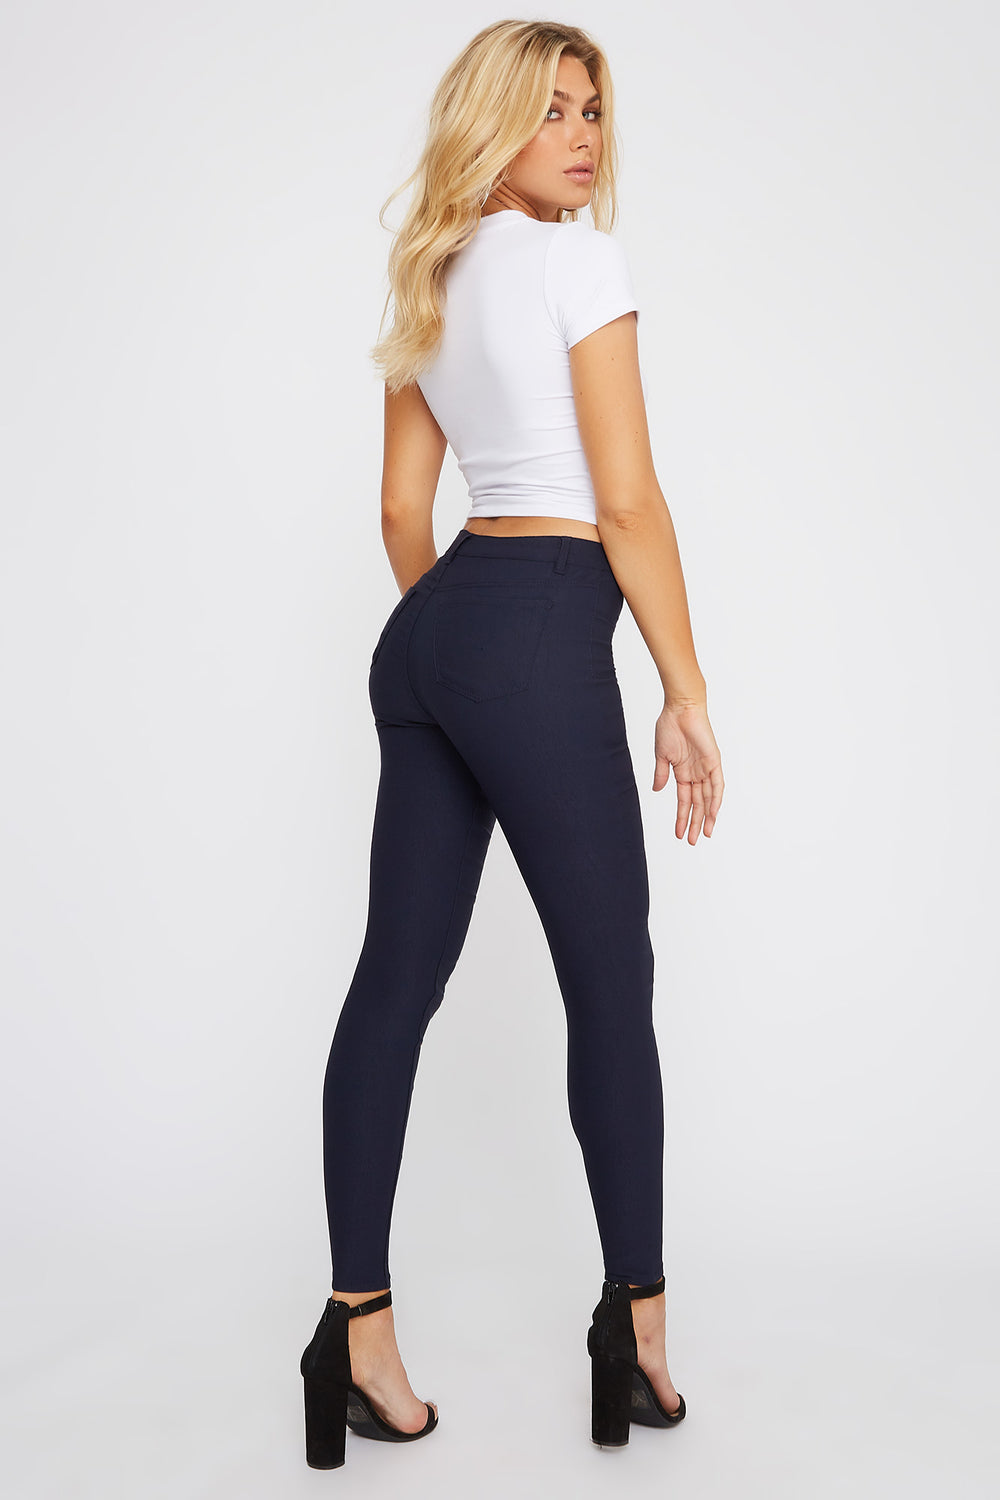 Miami High-Rise Super Skinny Jean Navy